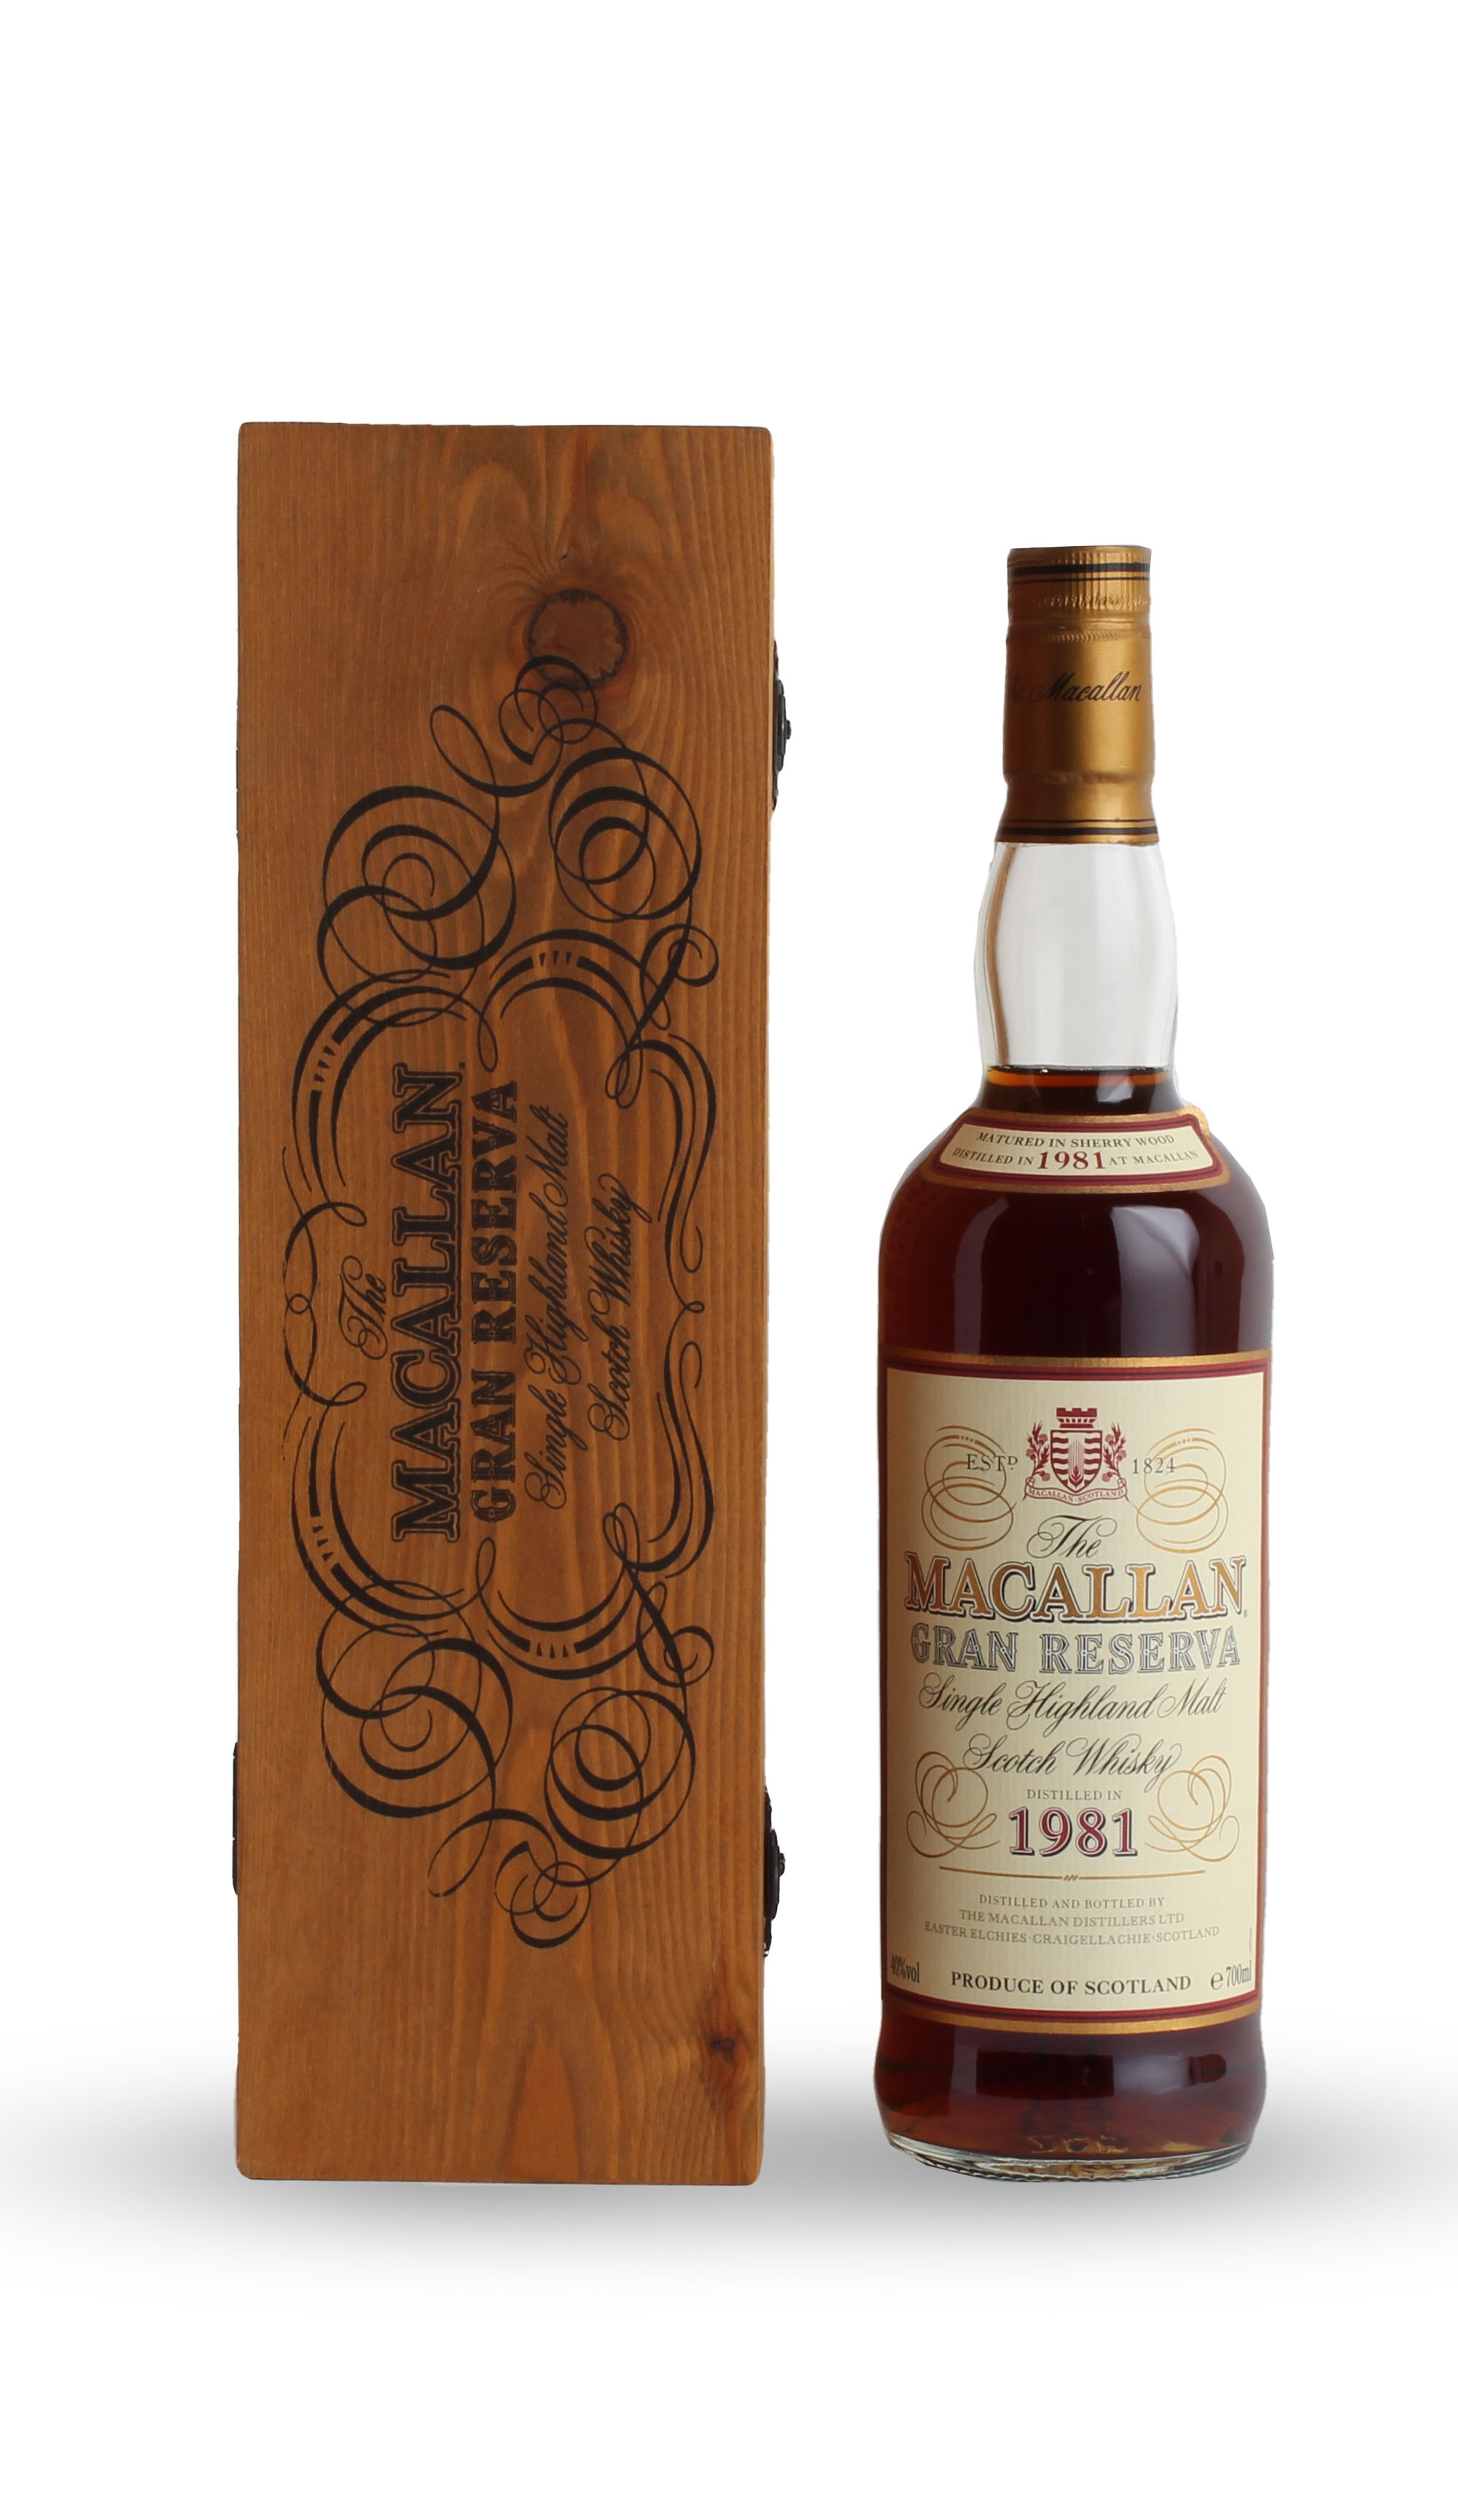 The Macallan Gran Reserva-1981